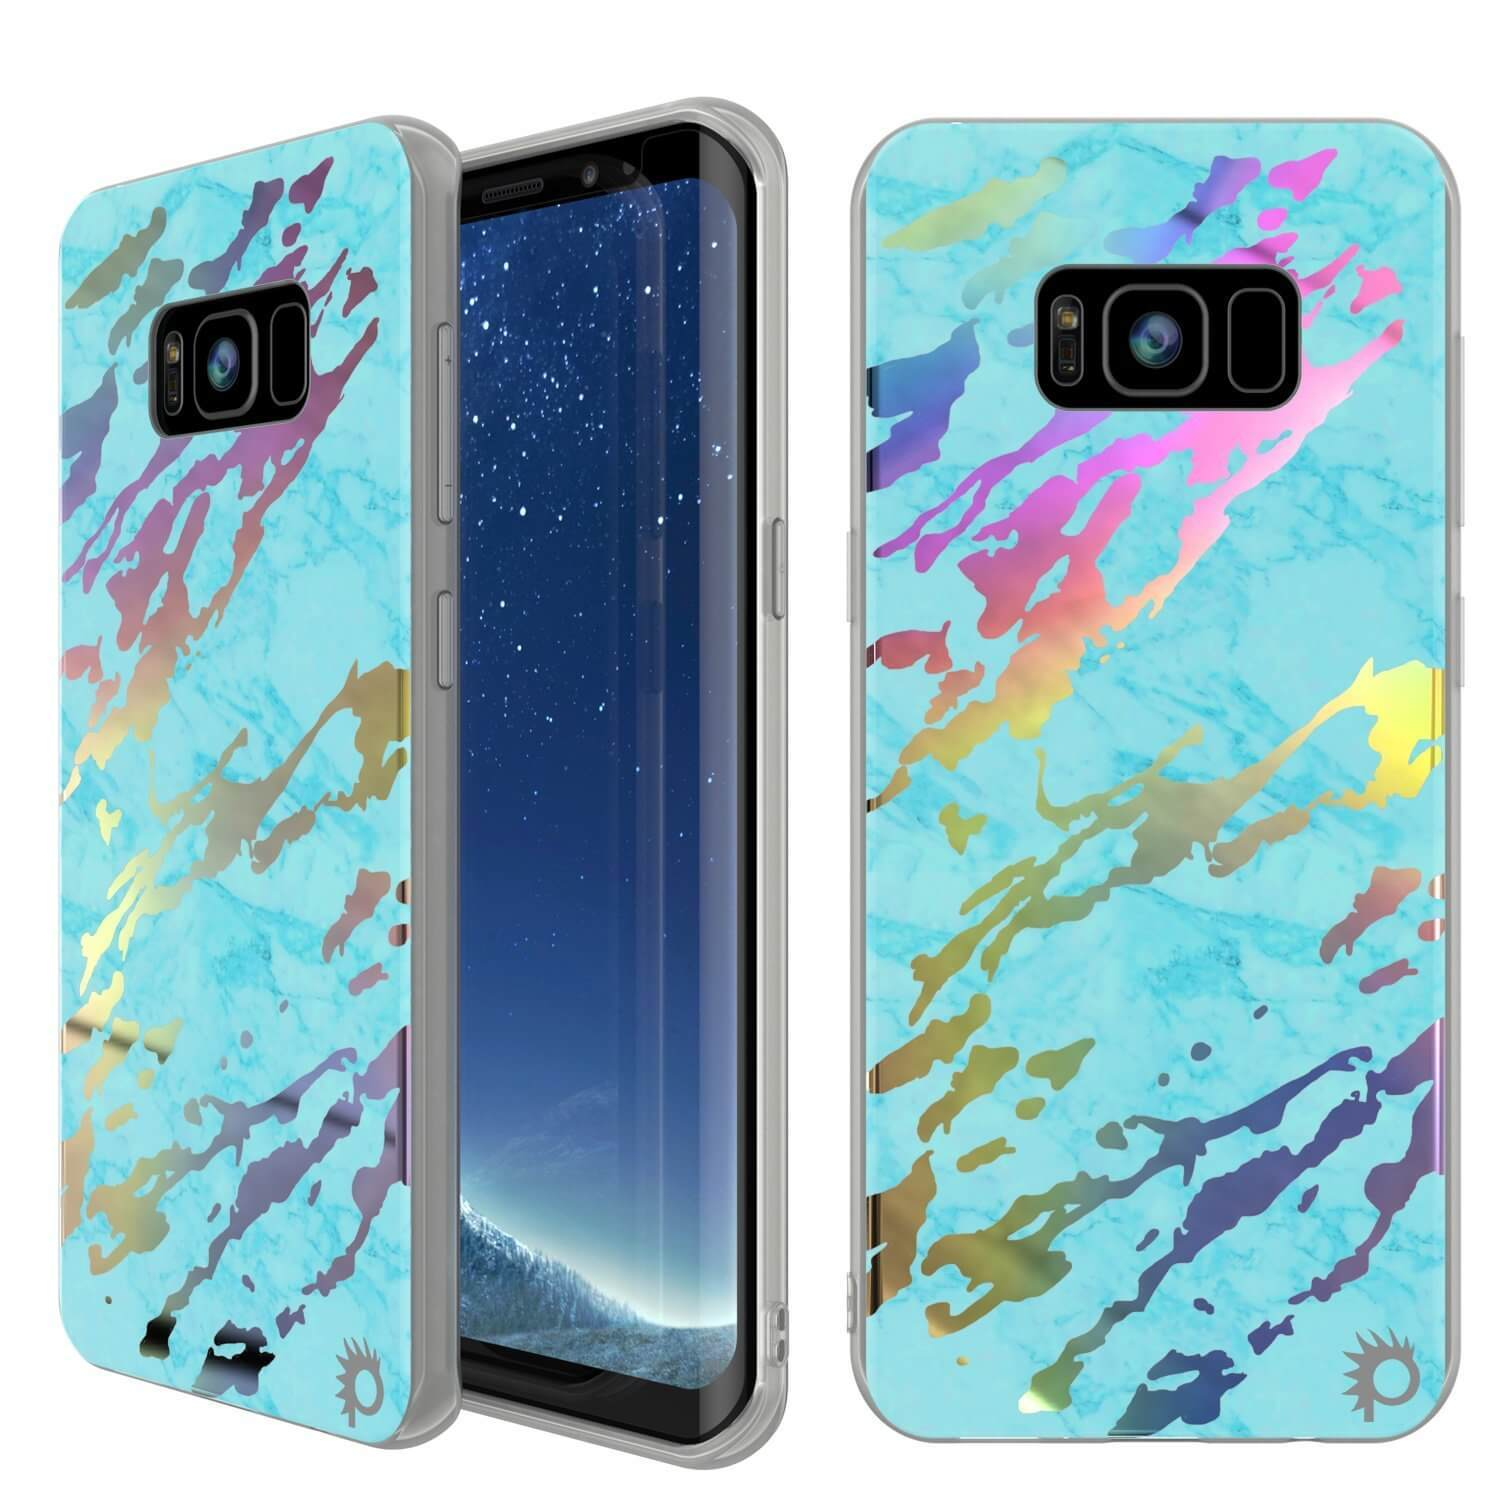 Punkcase Galaxy S8+ PLUS Marble Case, Protective Full Body Cover W/PunkShield Screen Protector (Teal Onyx)